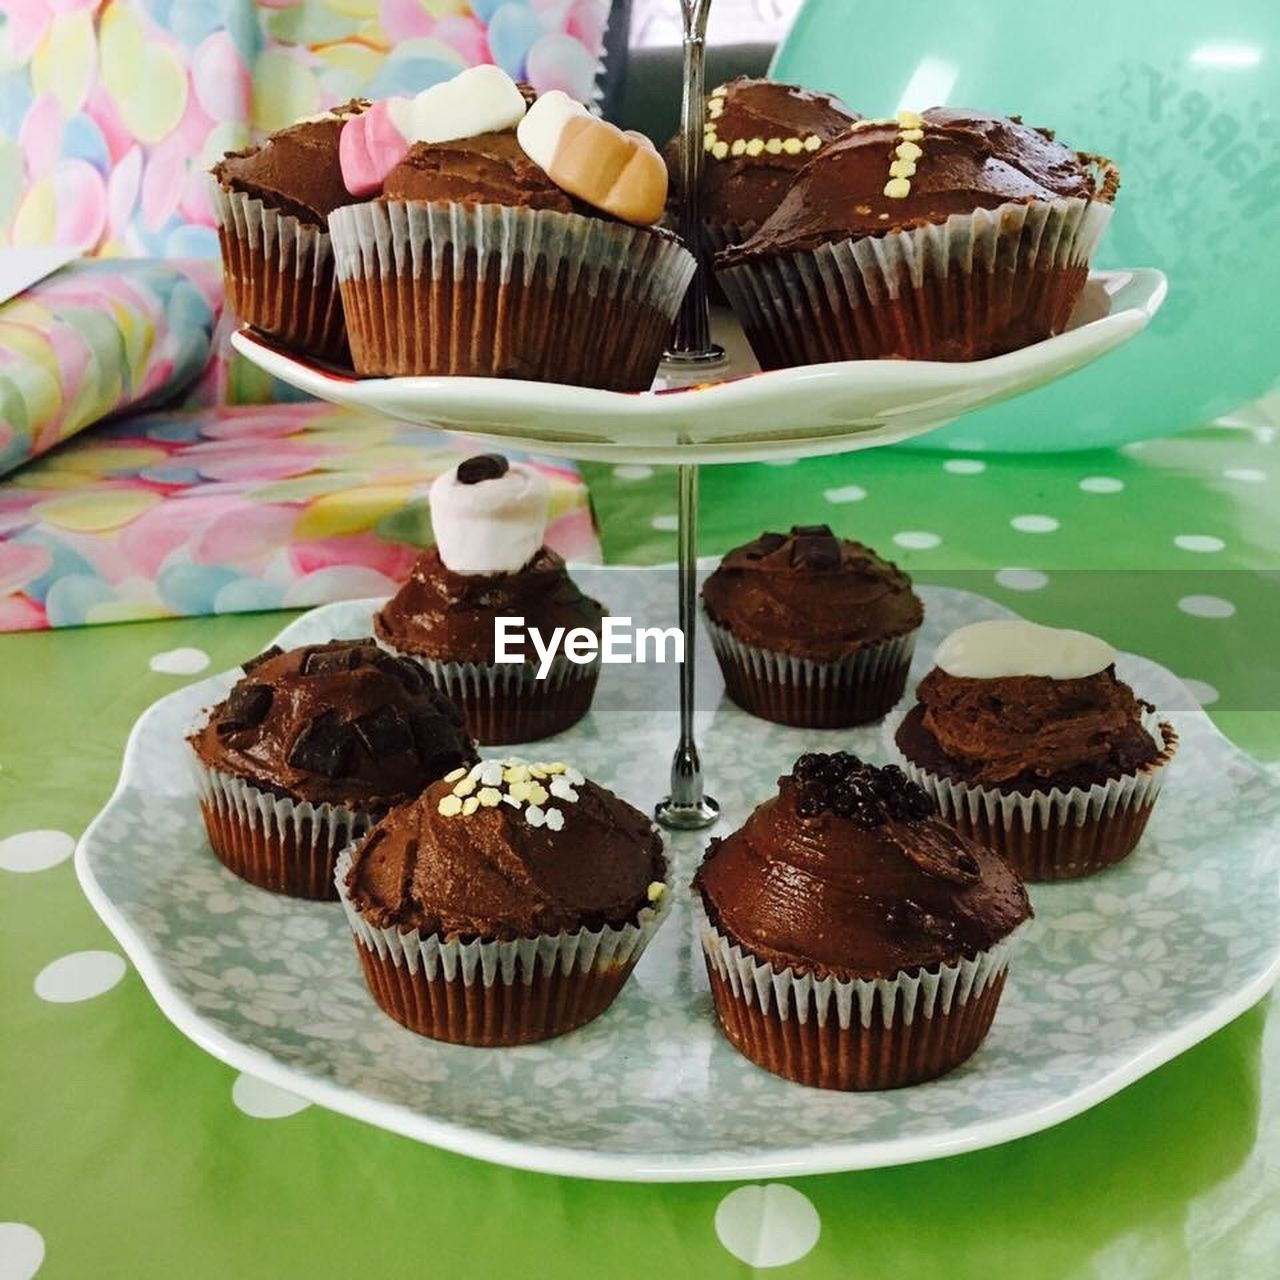 cupcake, sweet food, indulgence, dessert, food and drink, temptation, food, unhealthy eating, freshness, chocolate, ready-to-eat, cake, baked, table, indoors, high angle view, muffin, chocolate cake, sprinkles, no people, whipped cream, close-up, day